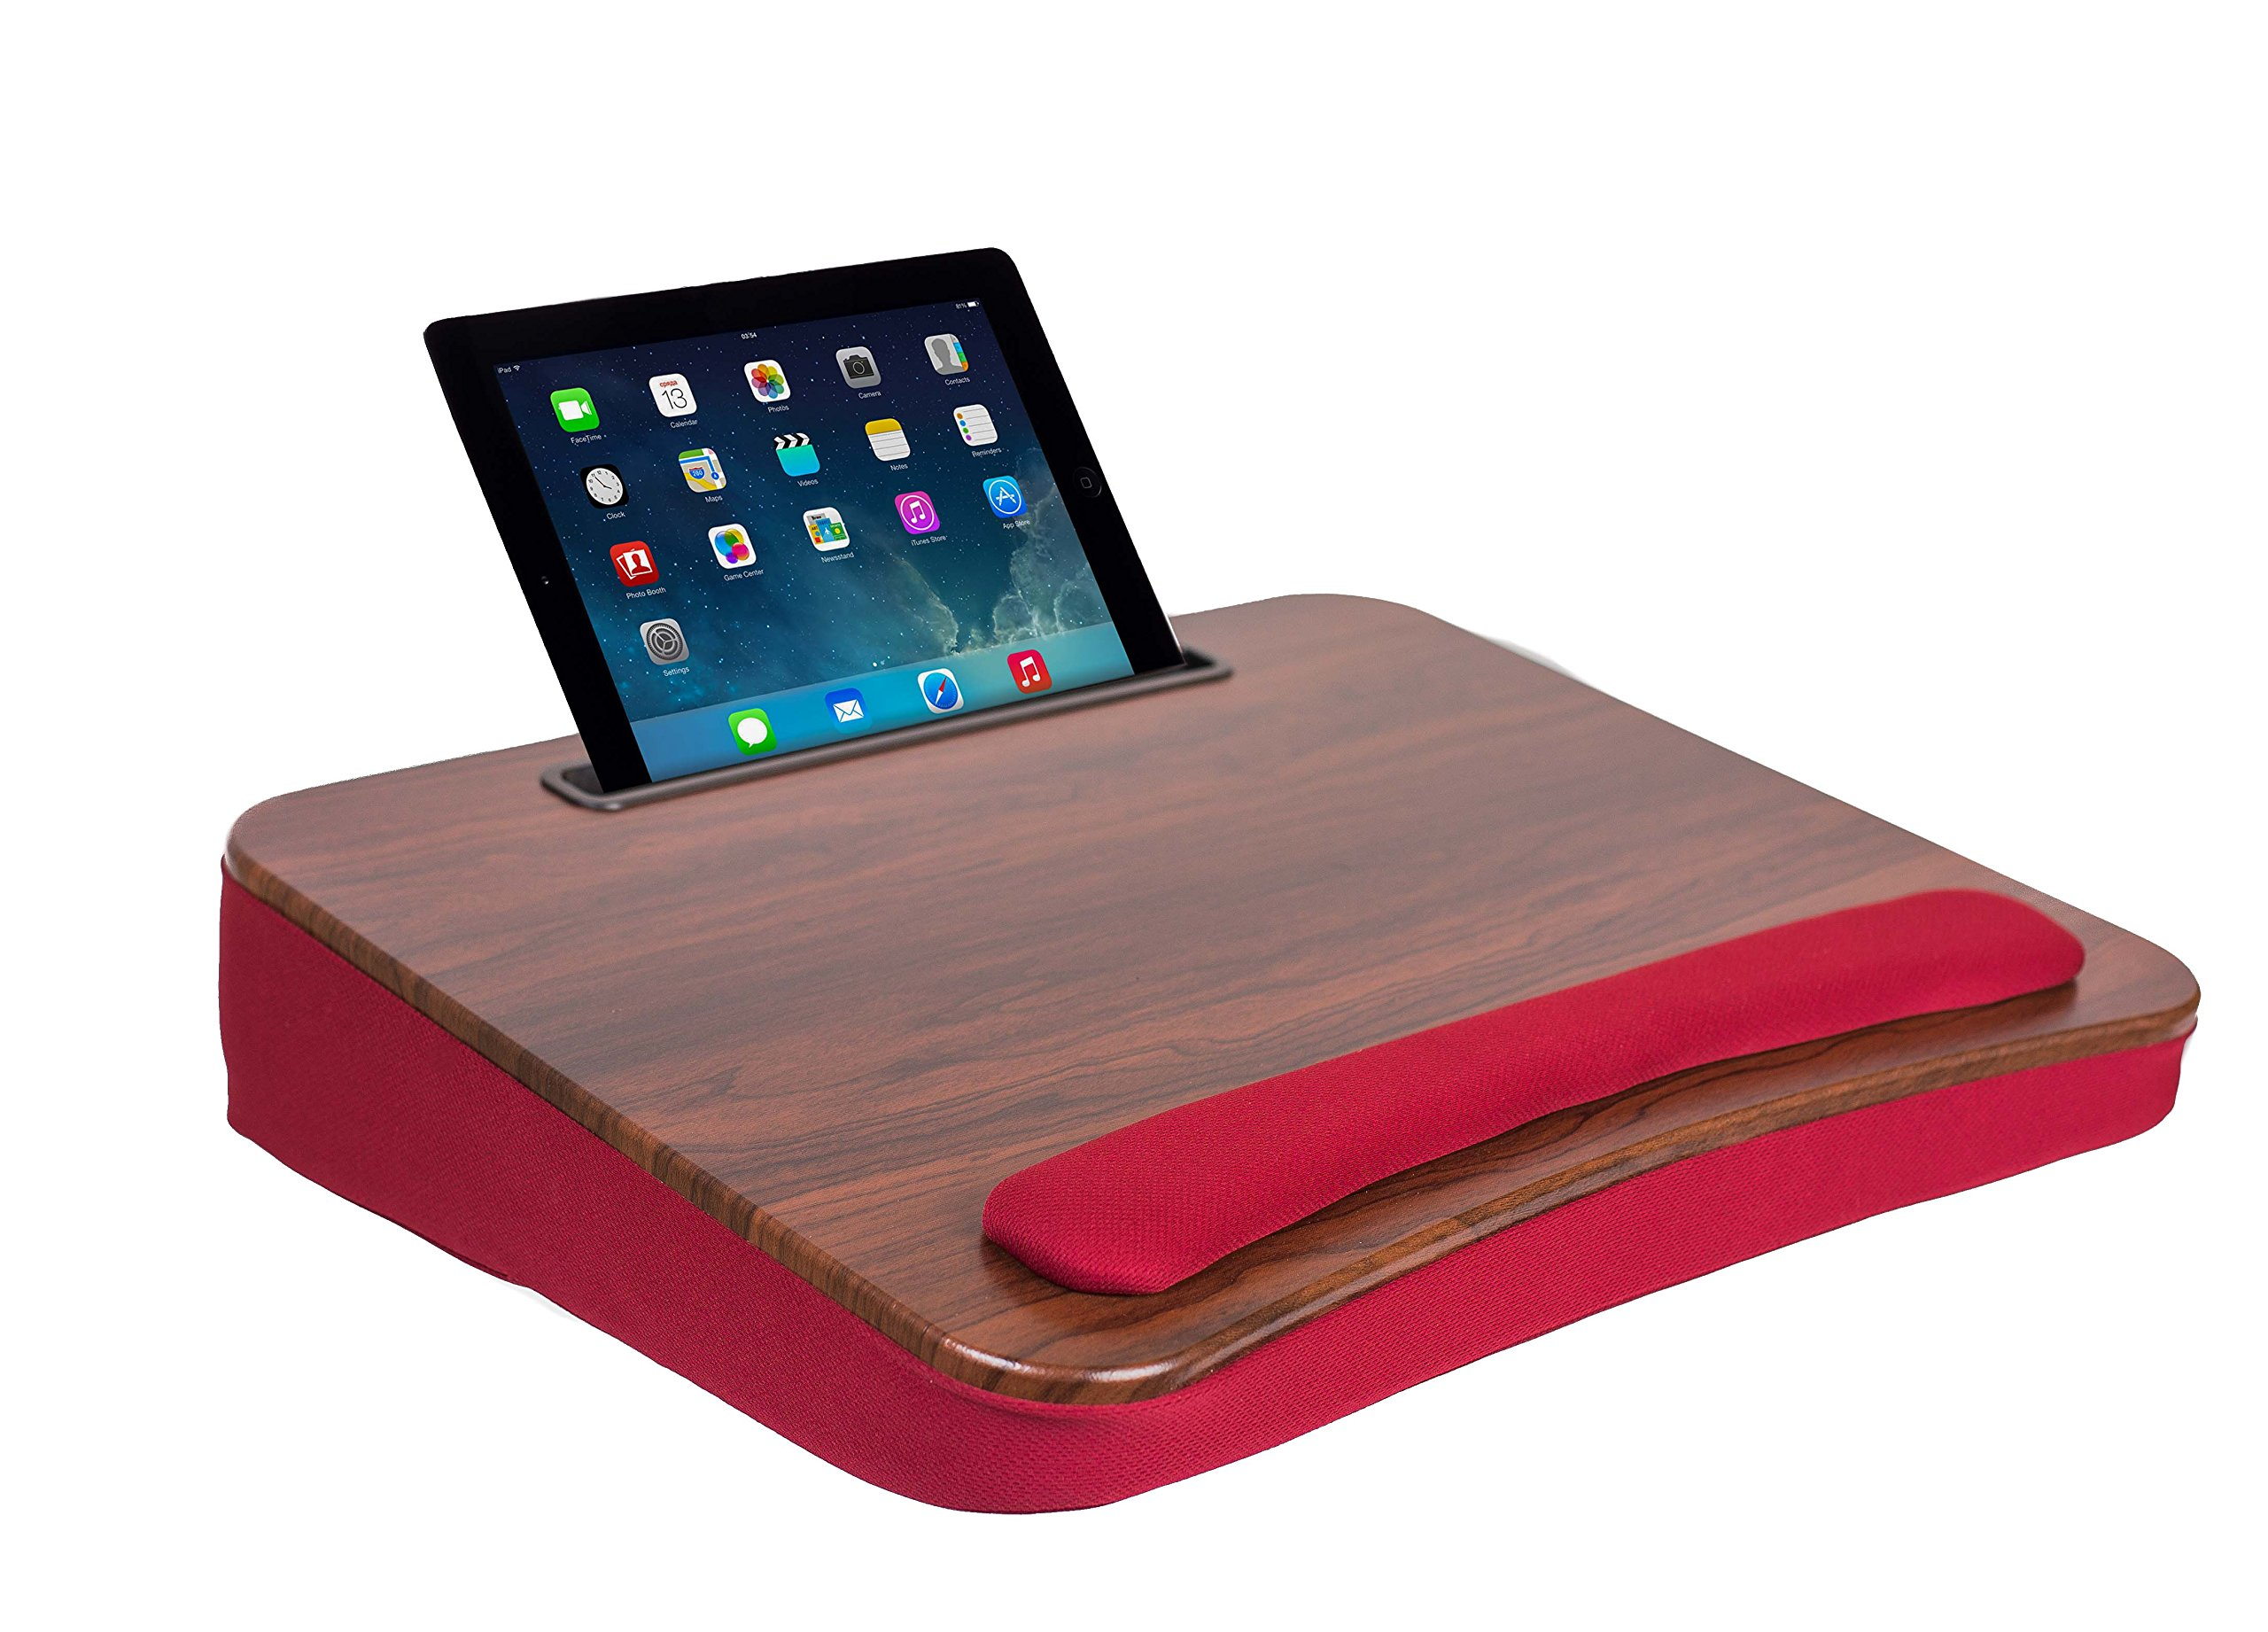 Sofia + Sam Oversized Memory Foam Lap Desk with Tablet slot by Sofia + Sam